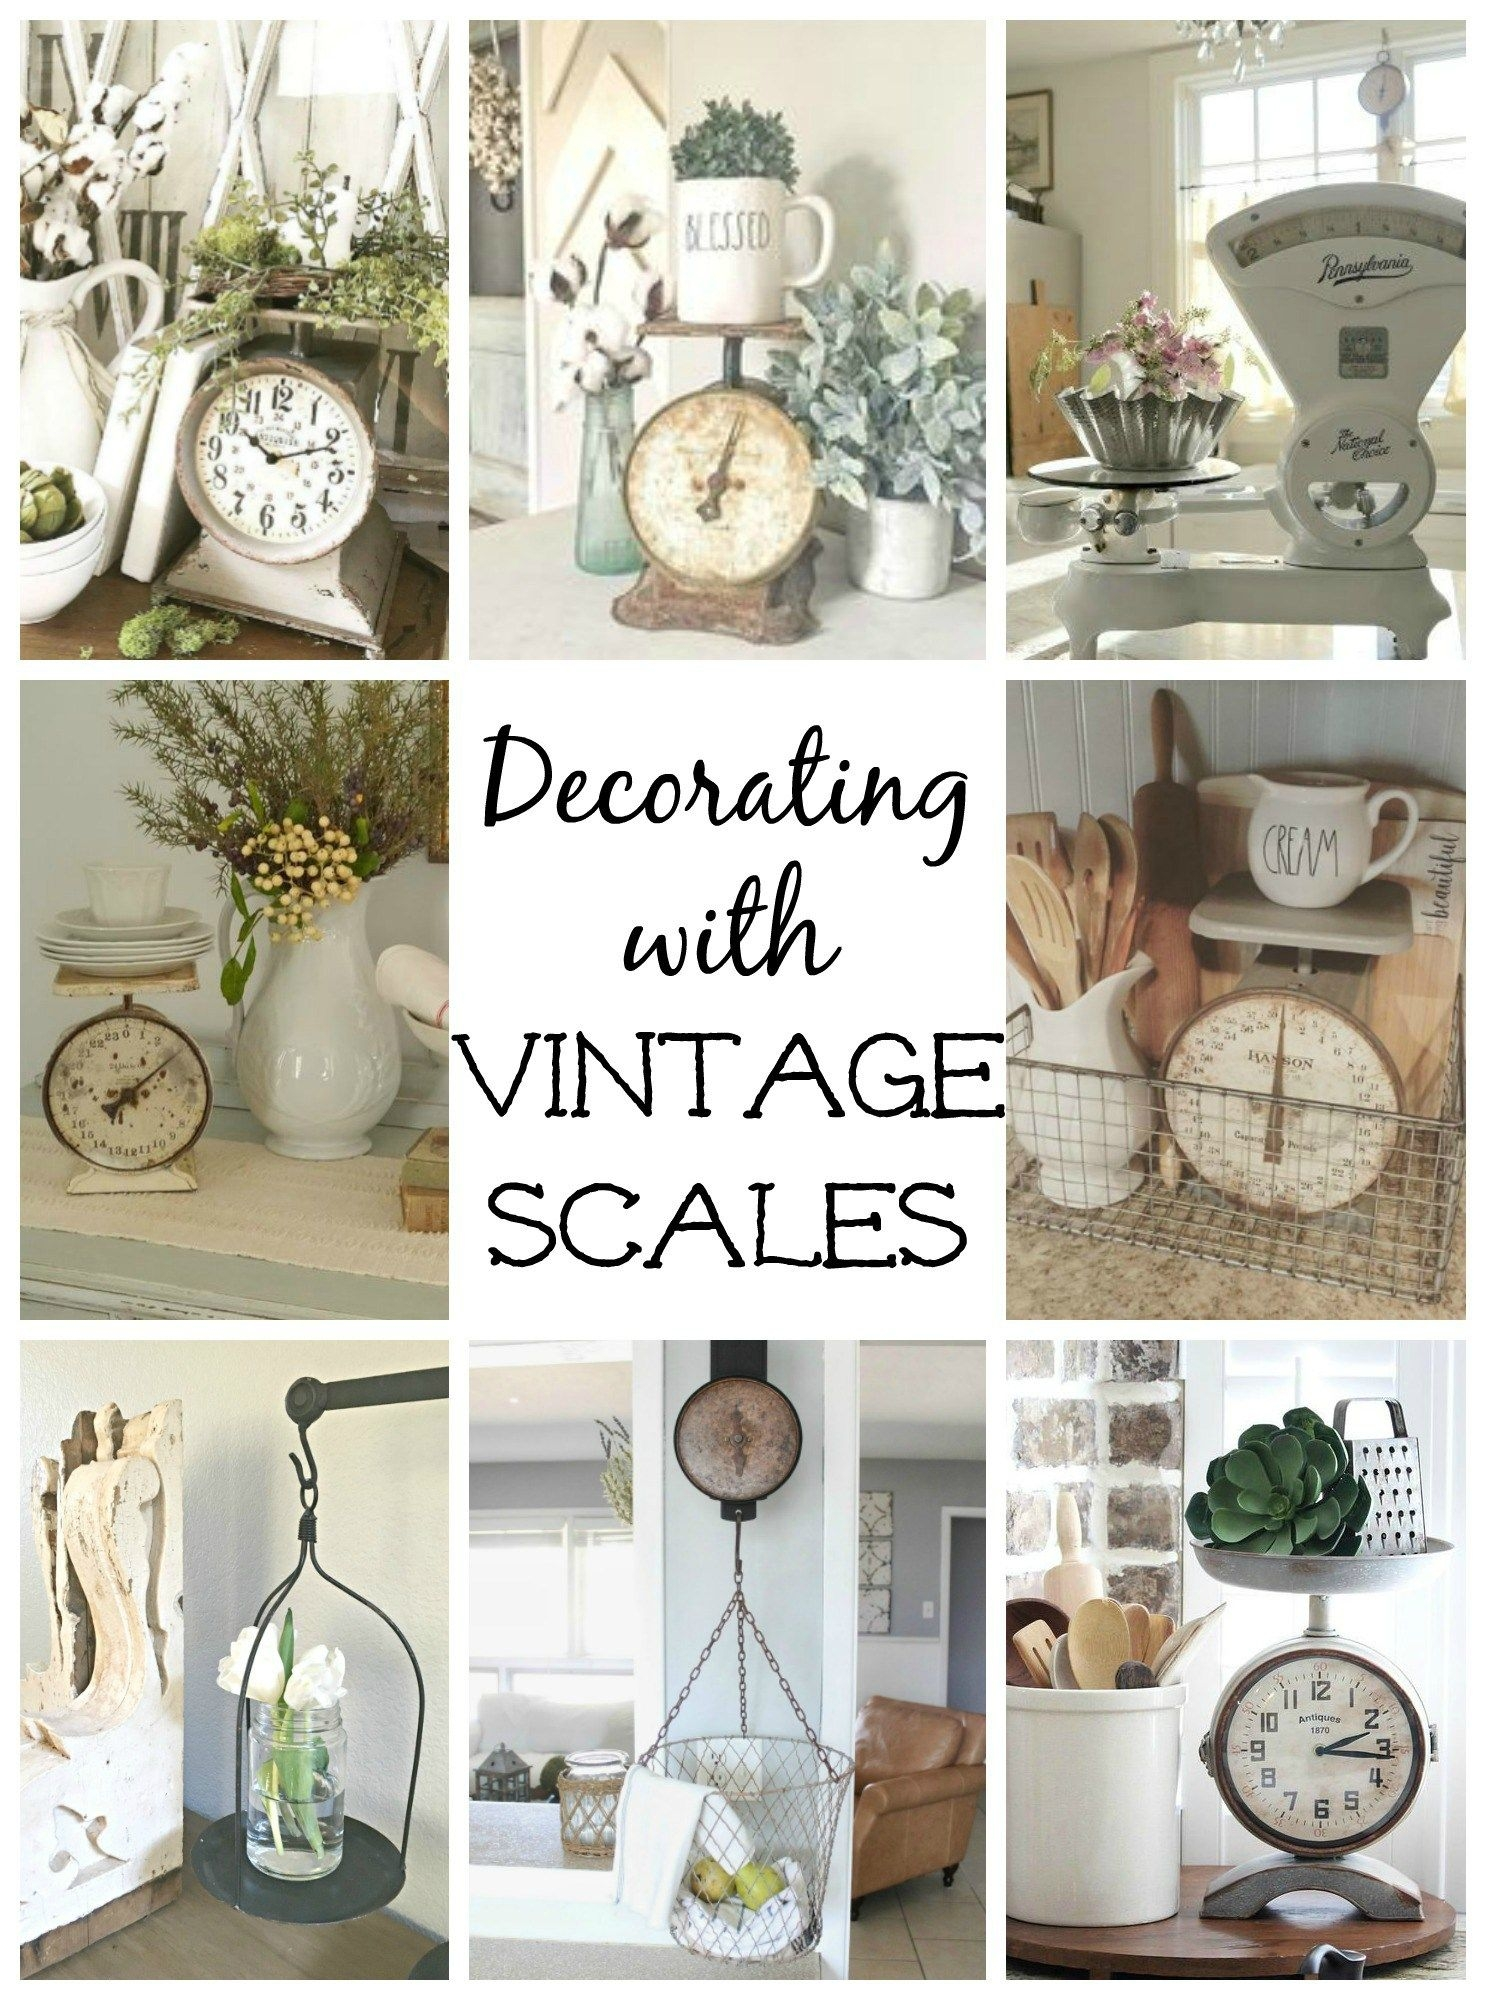 Decorating with Vintage Scales  Vintage scale decor